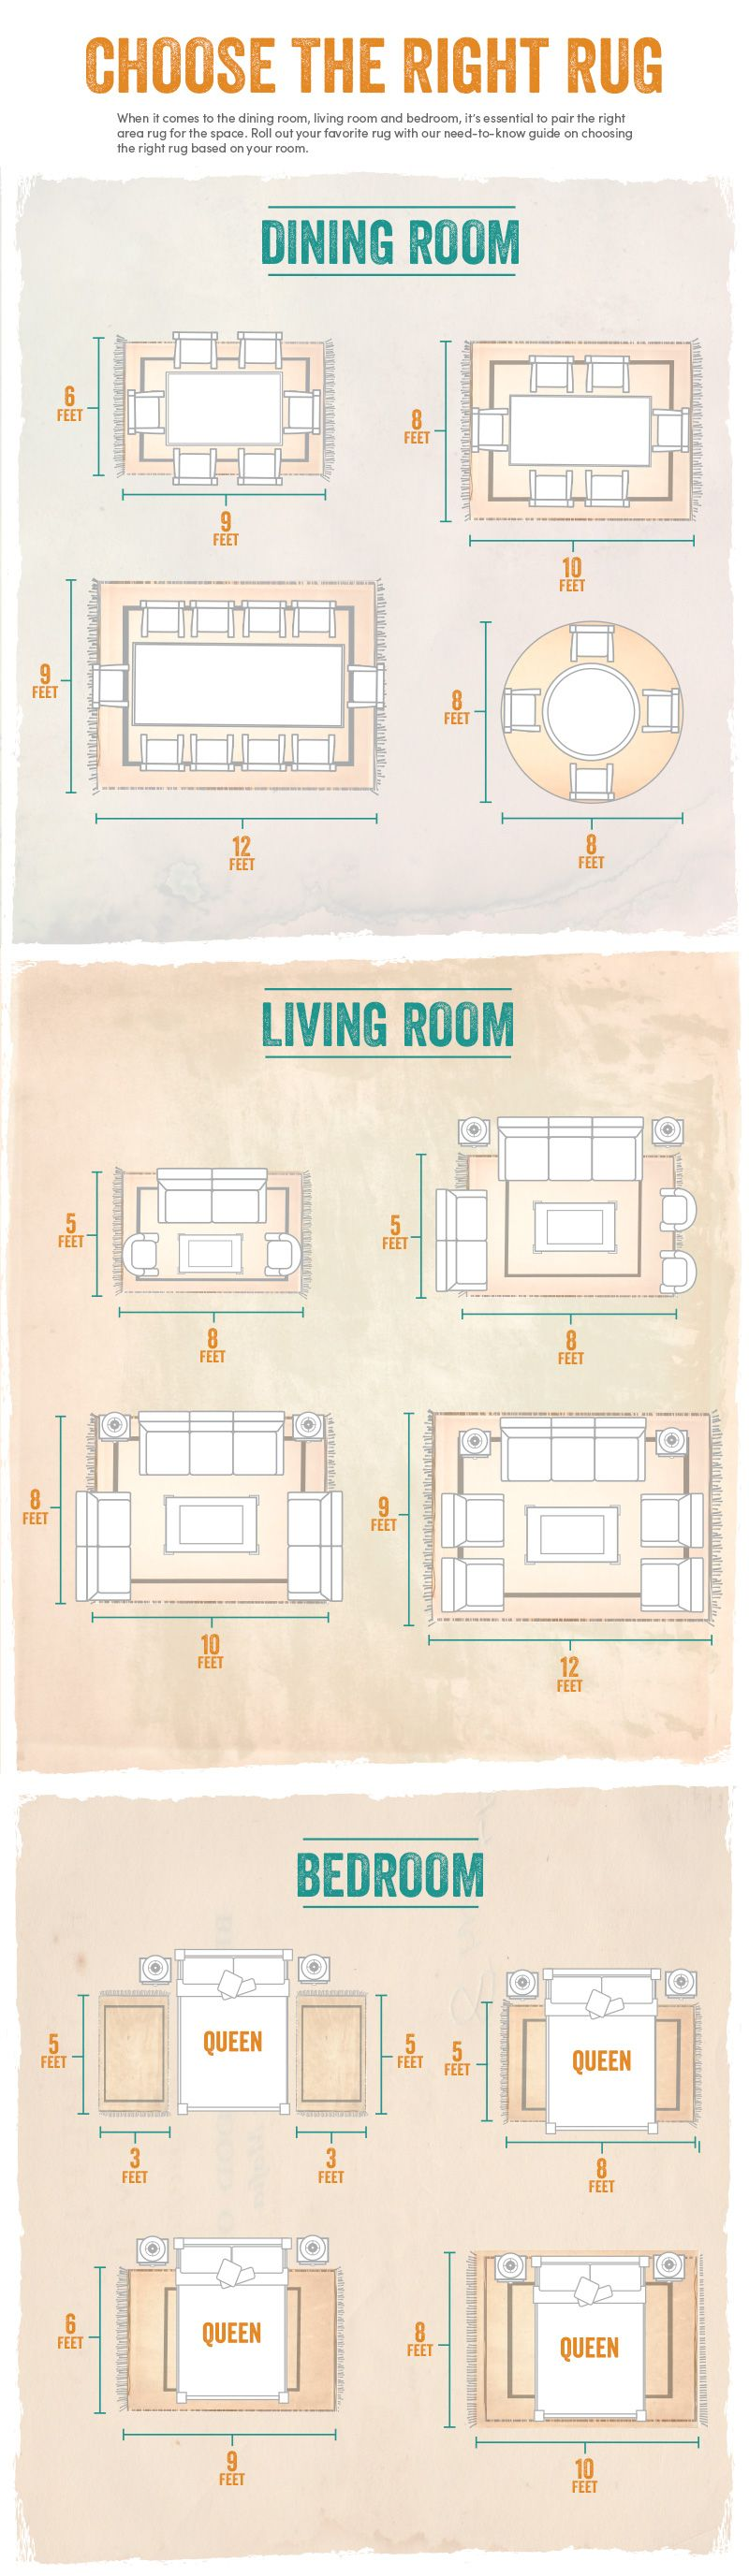 Before You Tweak Your Rug Placements Or Shop For New Rugs Altogether Take A Look Living Room PlacementRug Sizes RoomArea